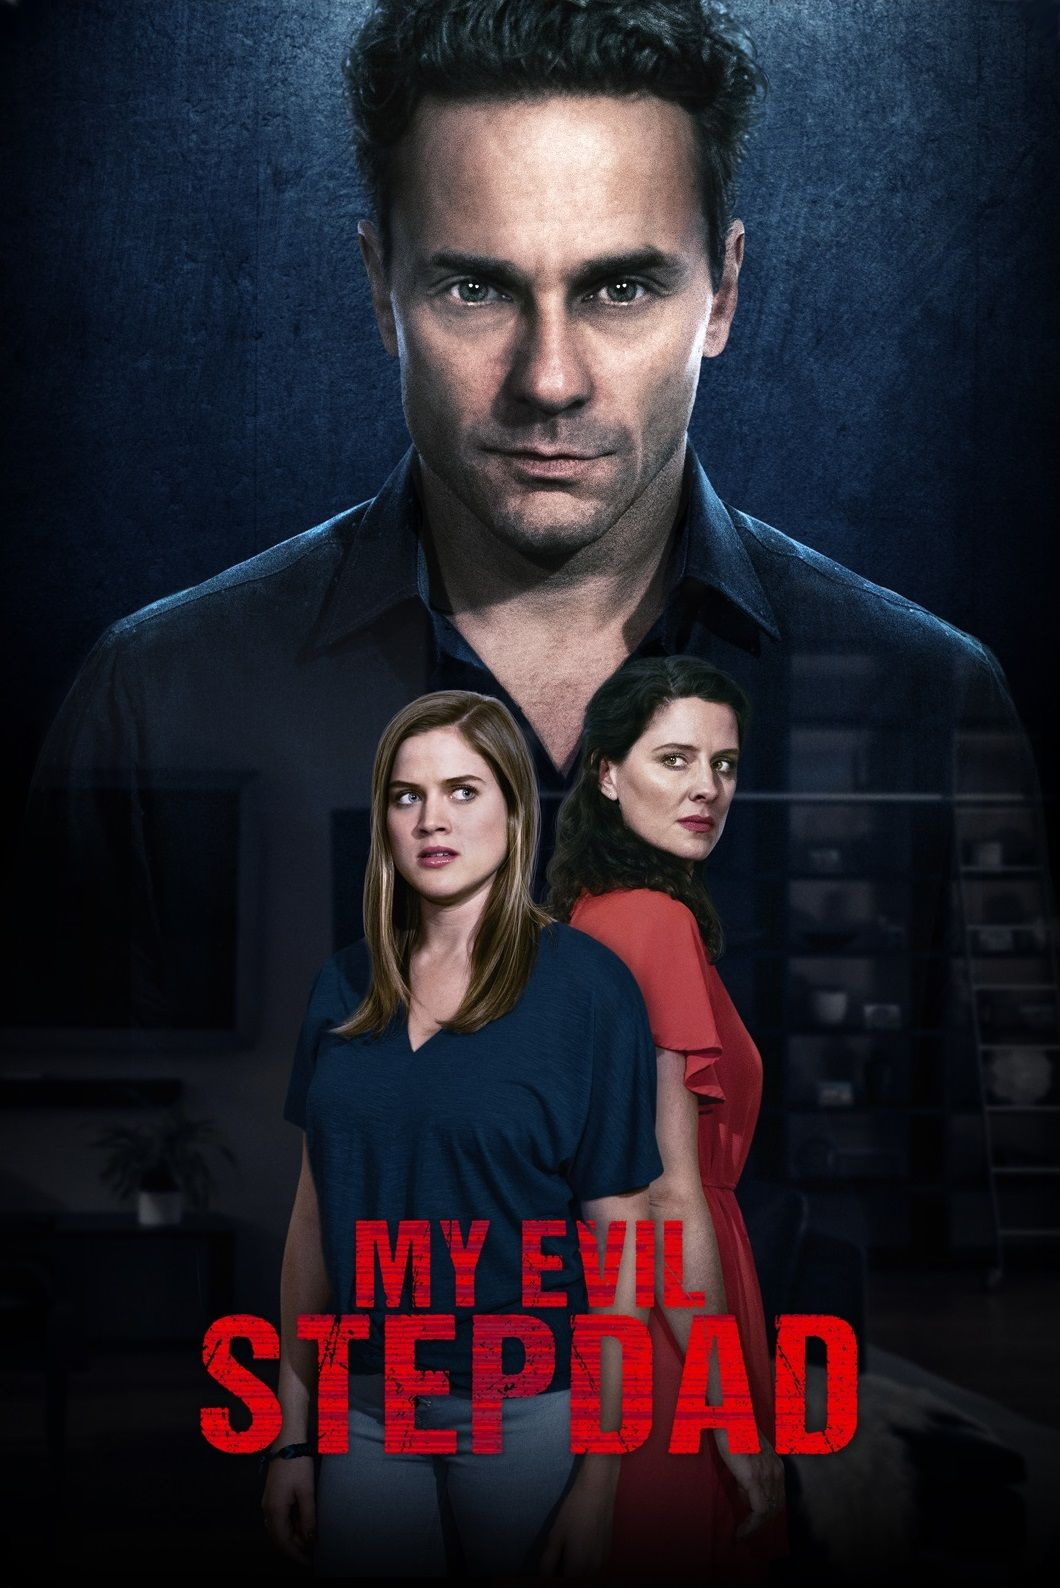 My Evil Stepdad - FRENCH HDRip